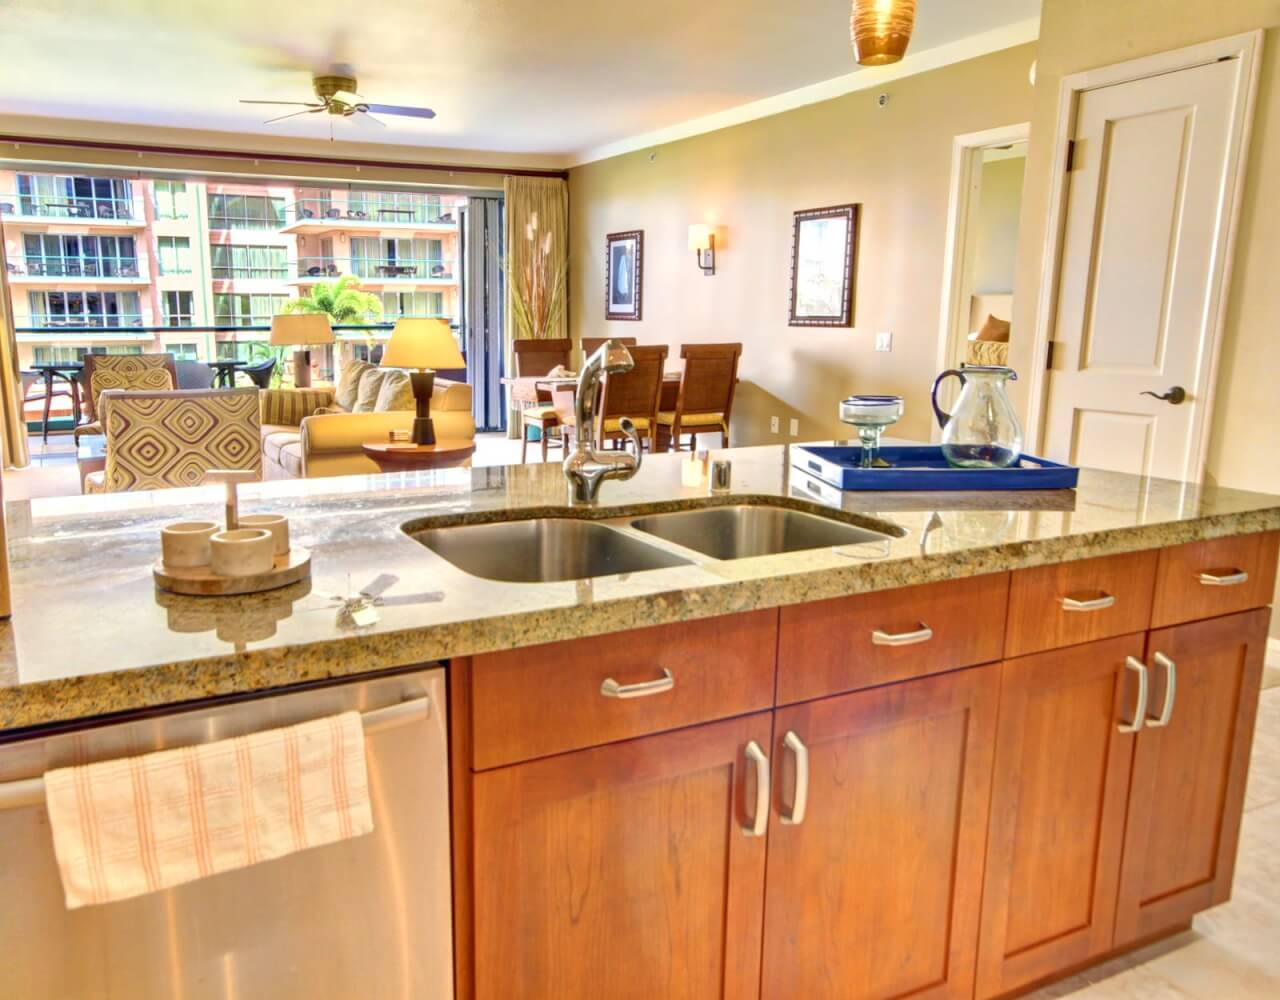 Practical Kitchen Practical Designs For Small Kitchens